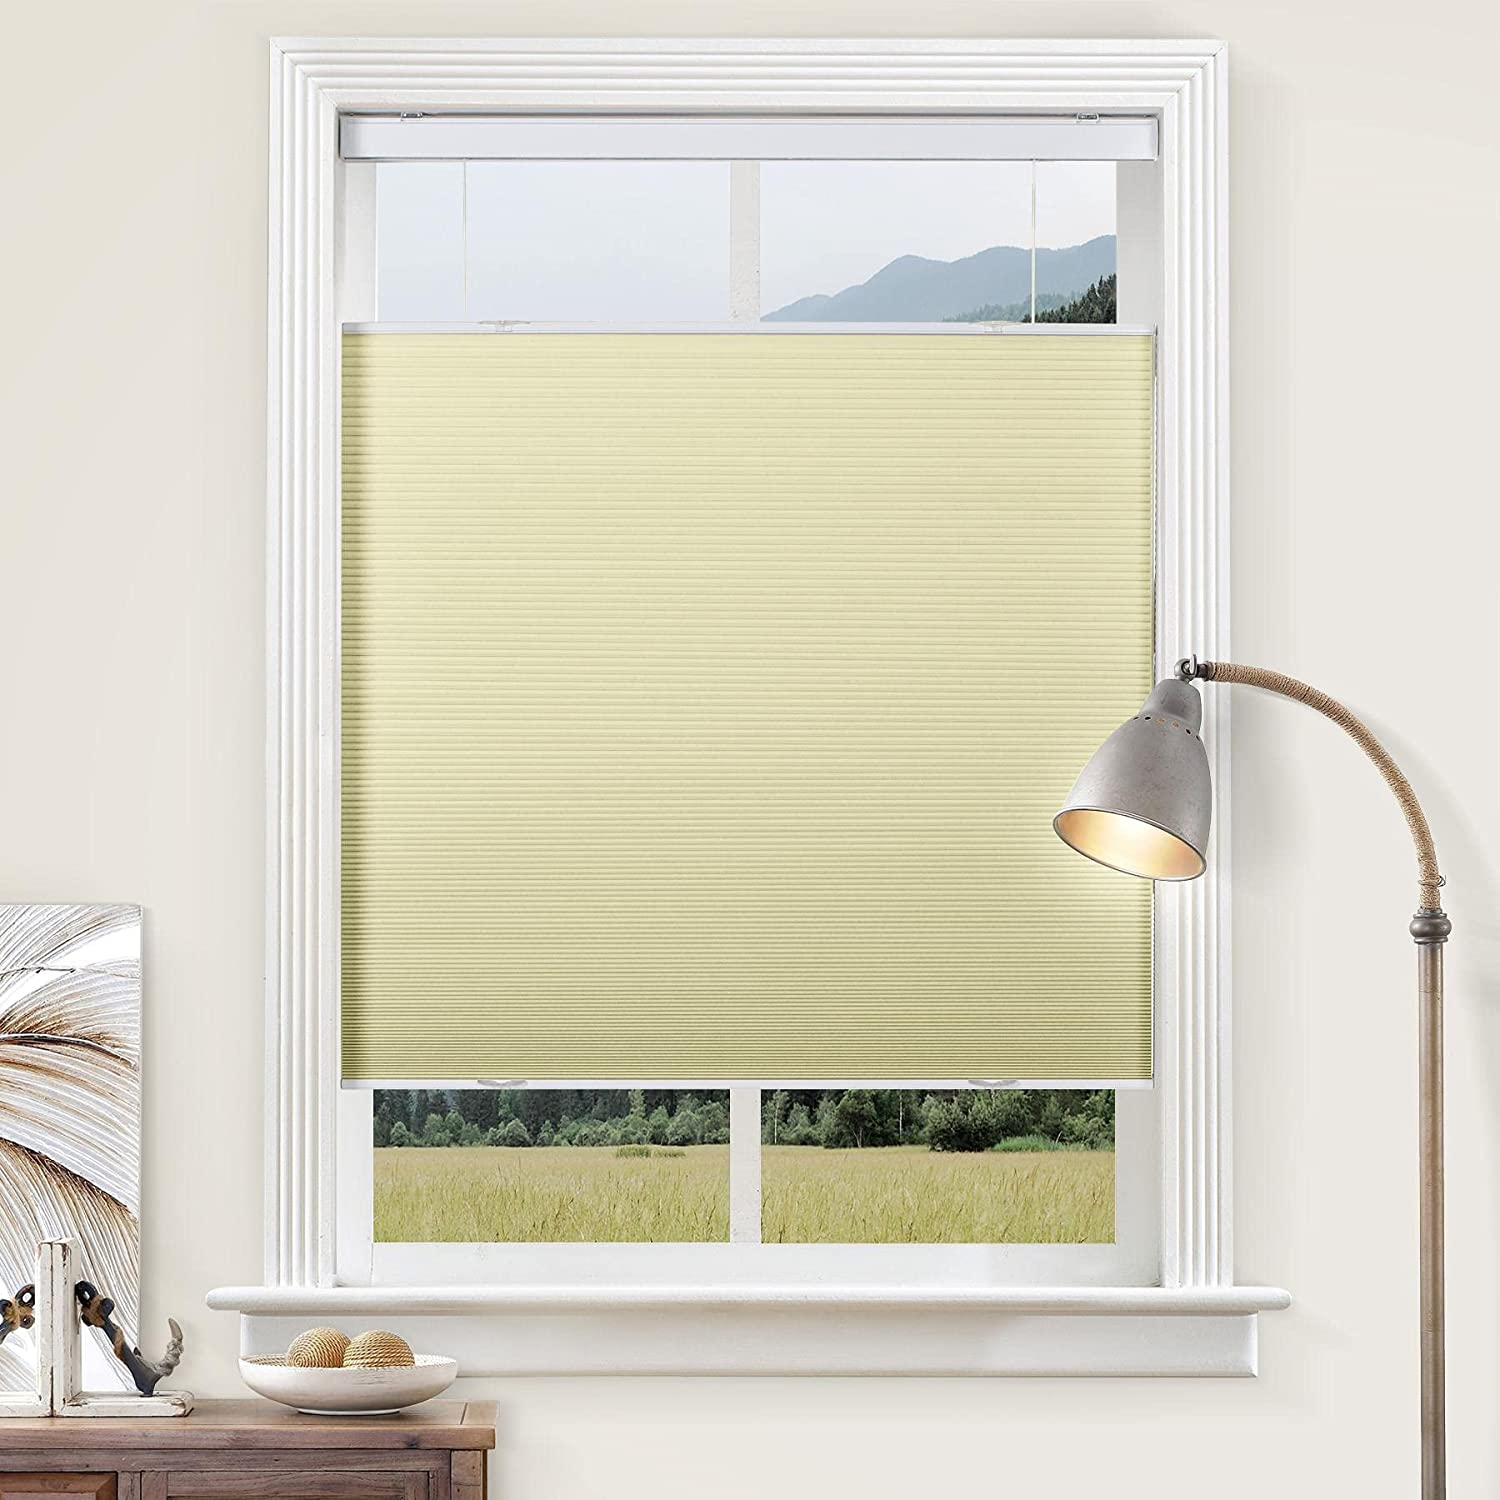 cololeaf Cellular Window Shades Cordless Top Down Bottom Up, Custom Made Pleated Honeycomb Shades for Windows Room Darkening Blackout Window Blinds for Home and Office, Beige